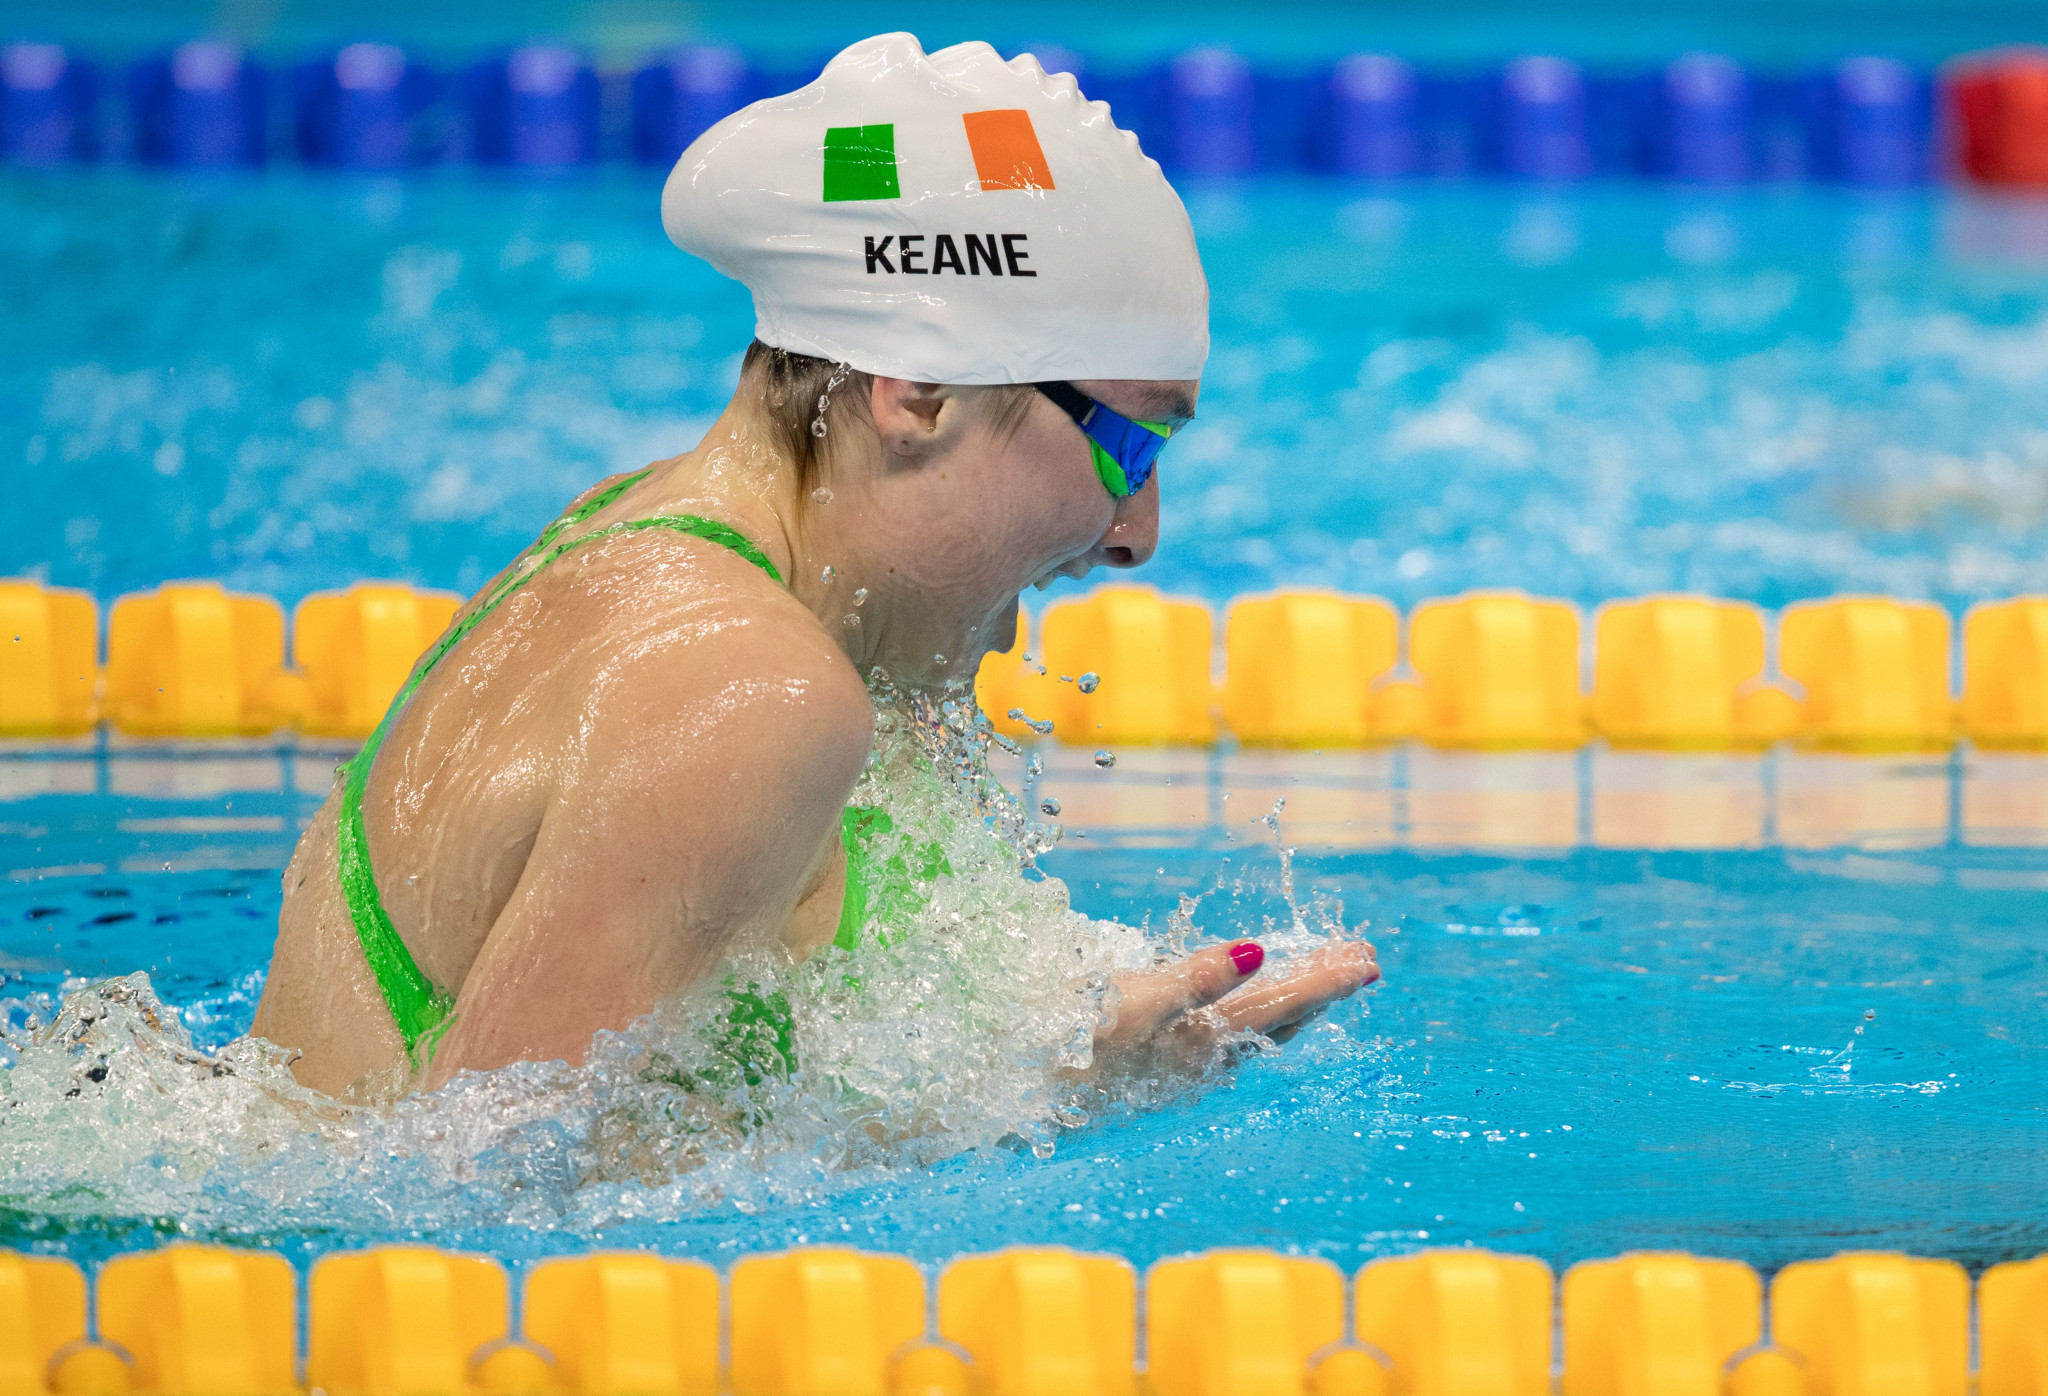 Paralympian Keane calls for greater focus on Paralympic Games